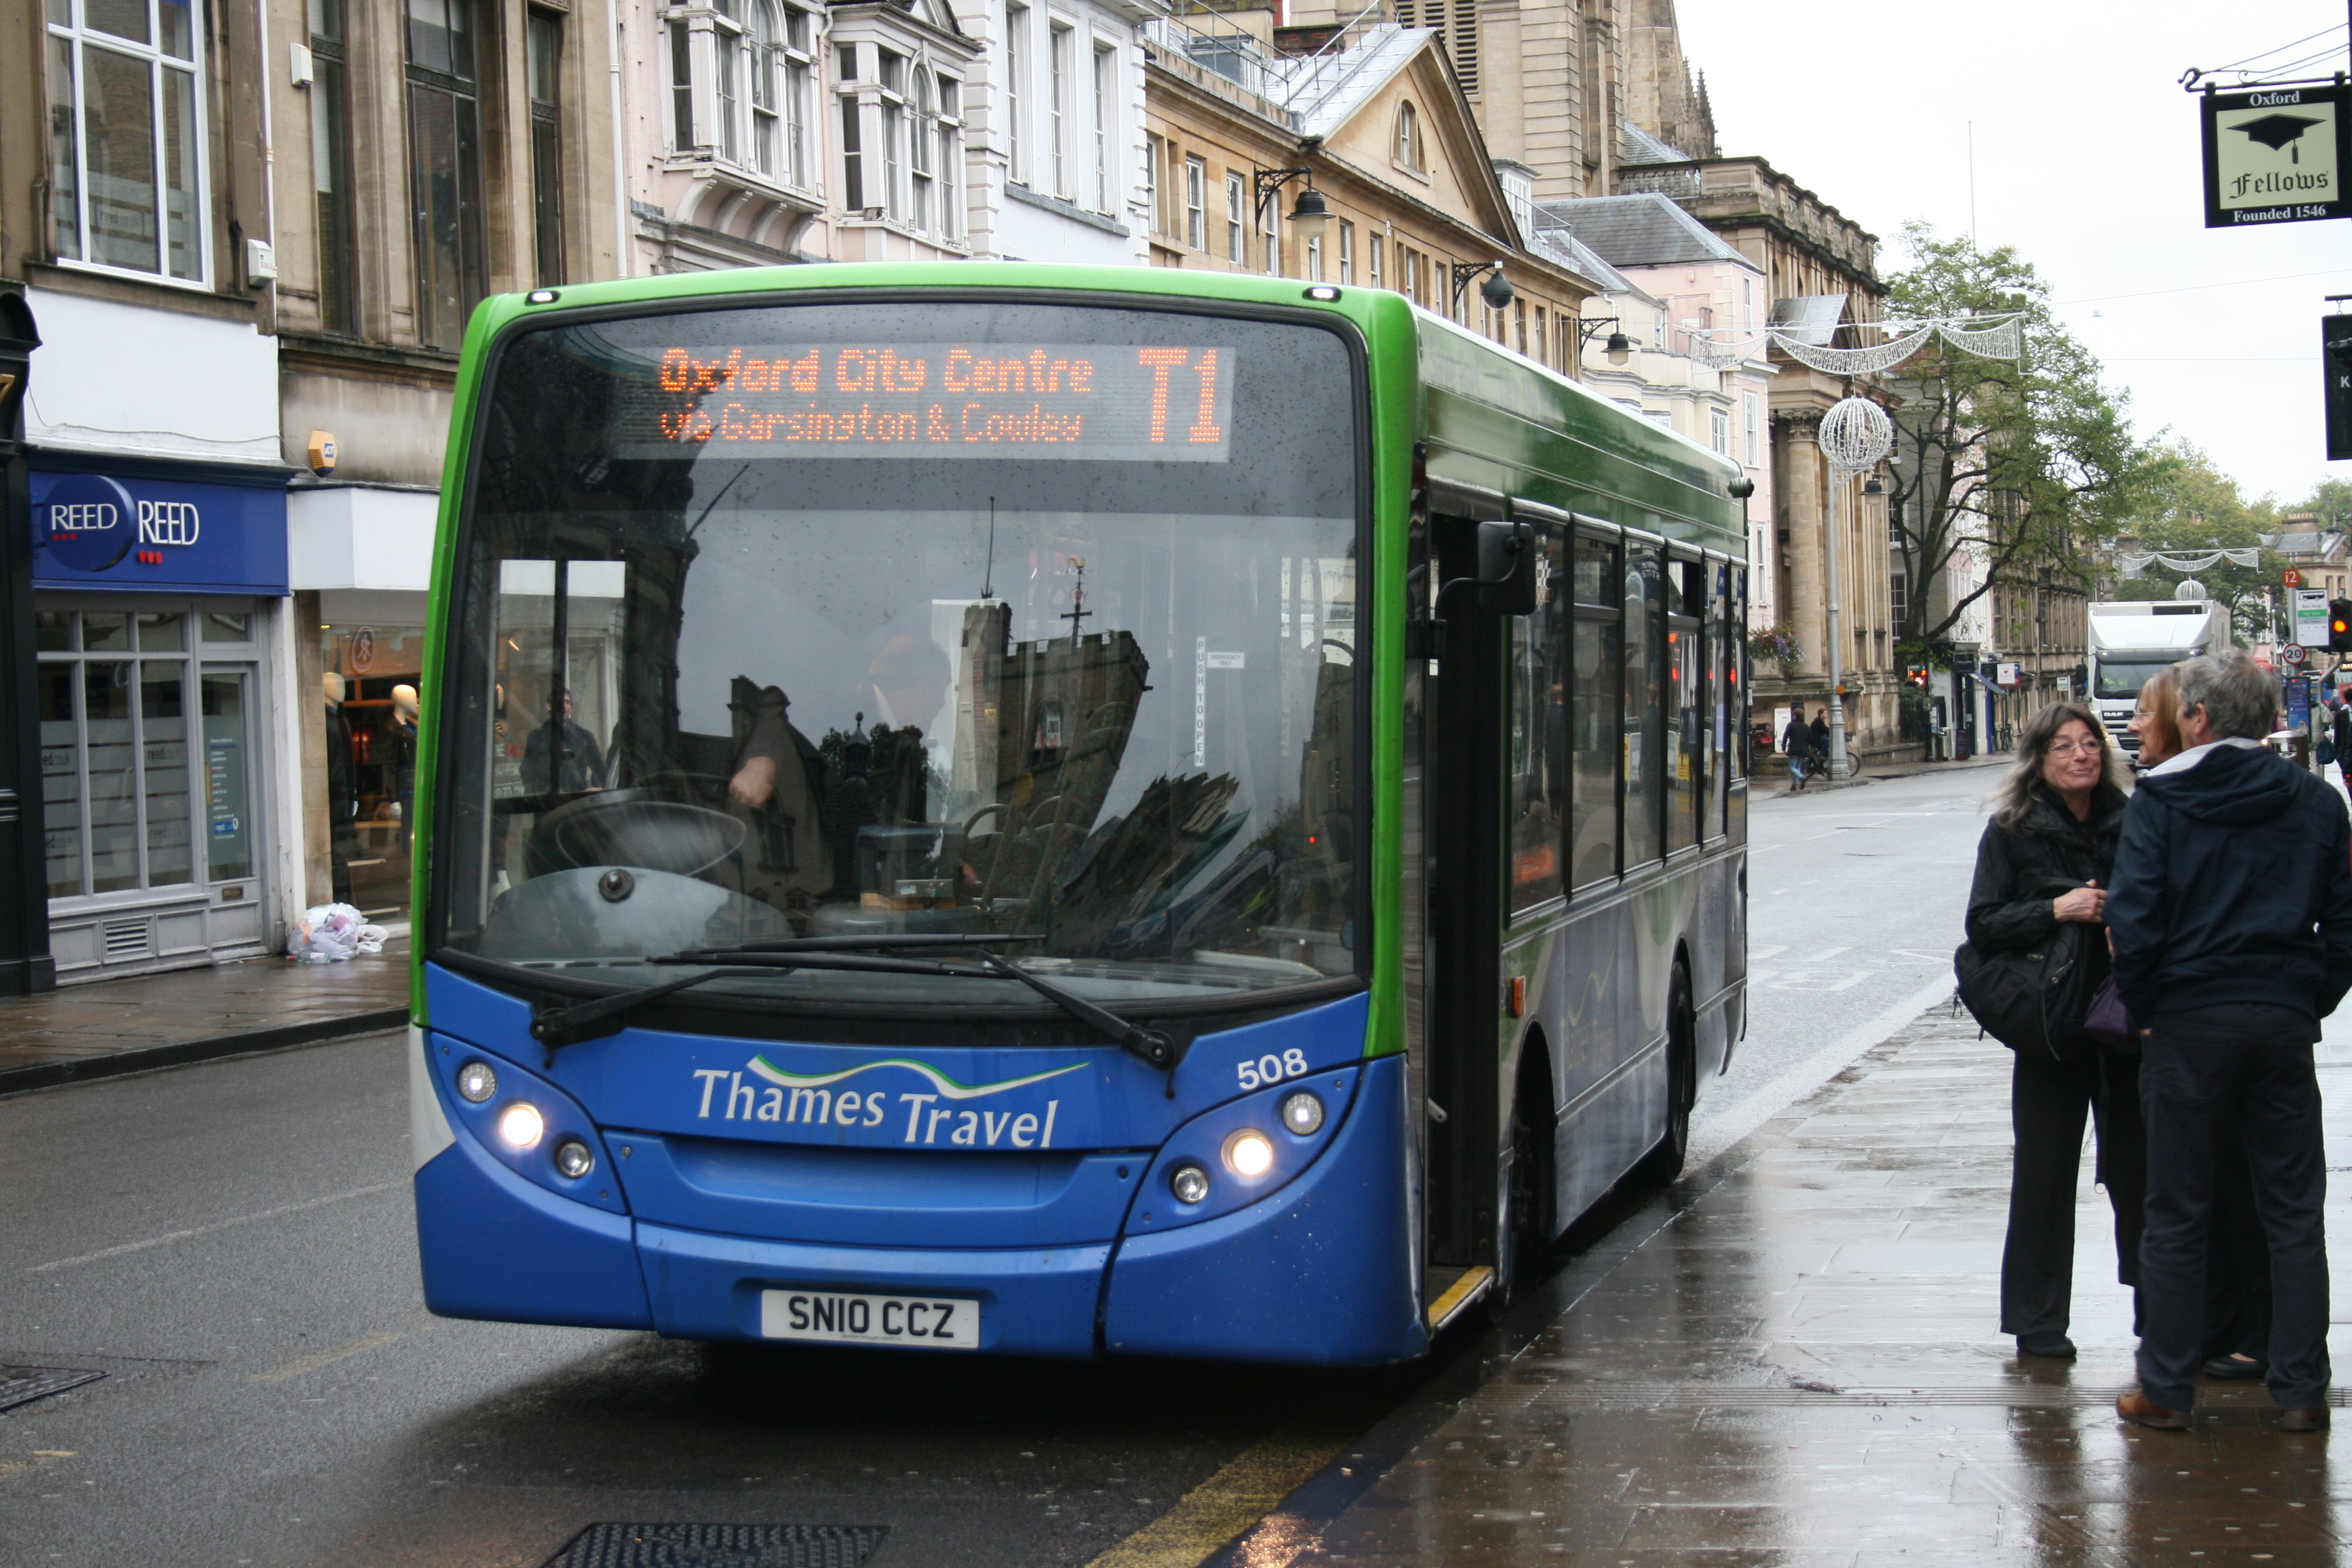 file:go-ahead thames travel 508 on route t1, oxford high street